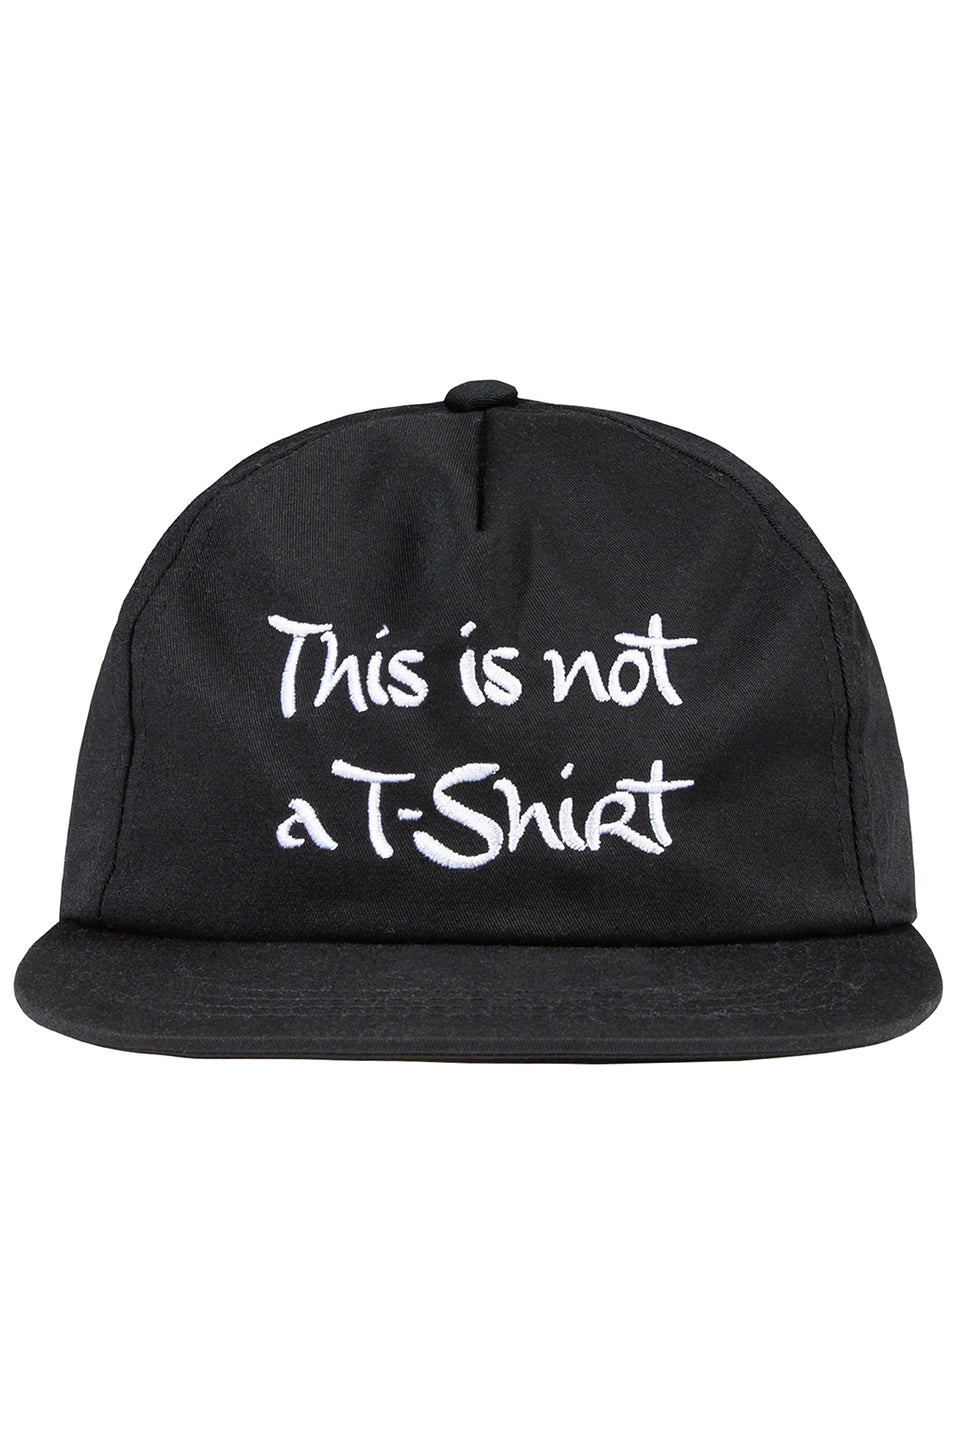 This Is Not a T-Shirt Snapback